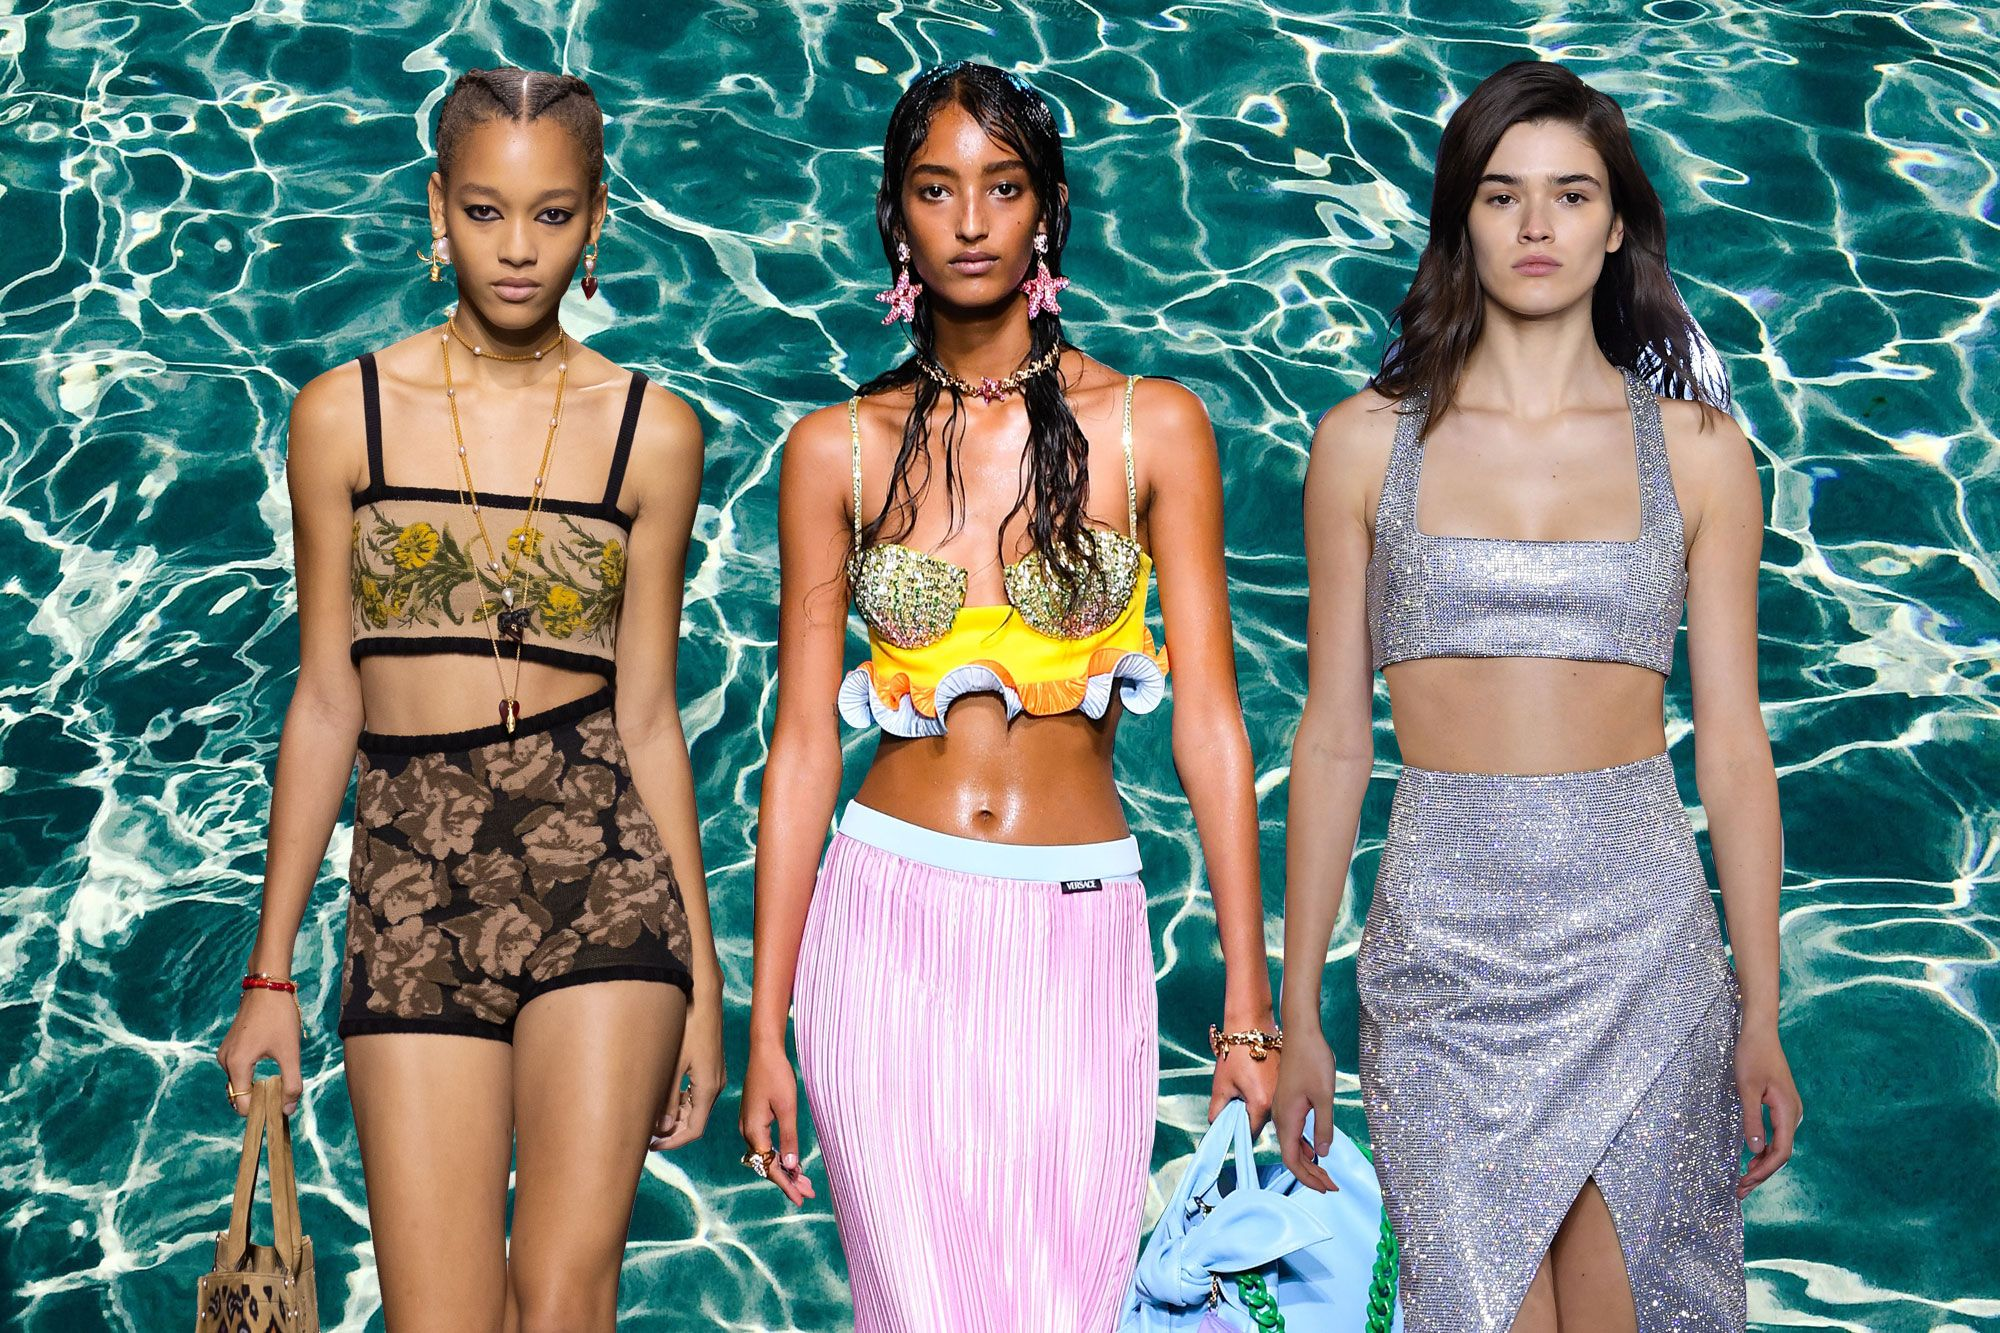 Tatler's Haute List: Bougie Bralettes are the One Trend You Need for a Hot Girl Summer